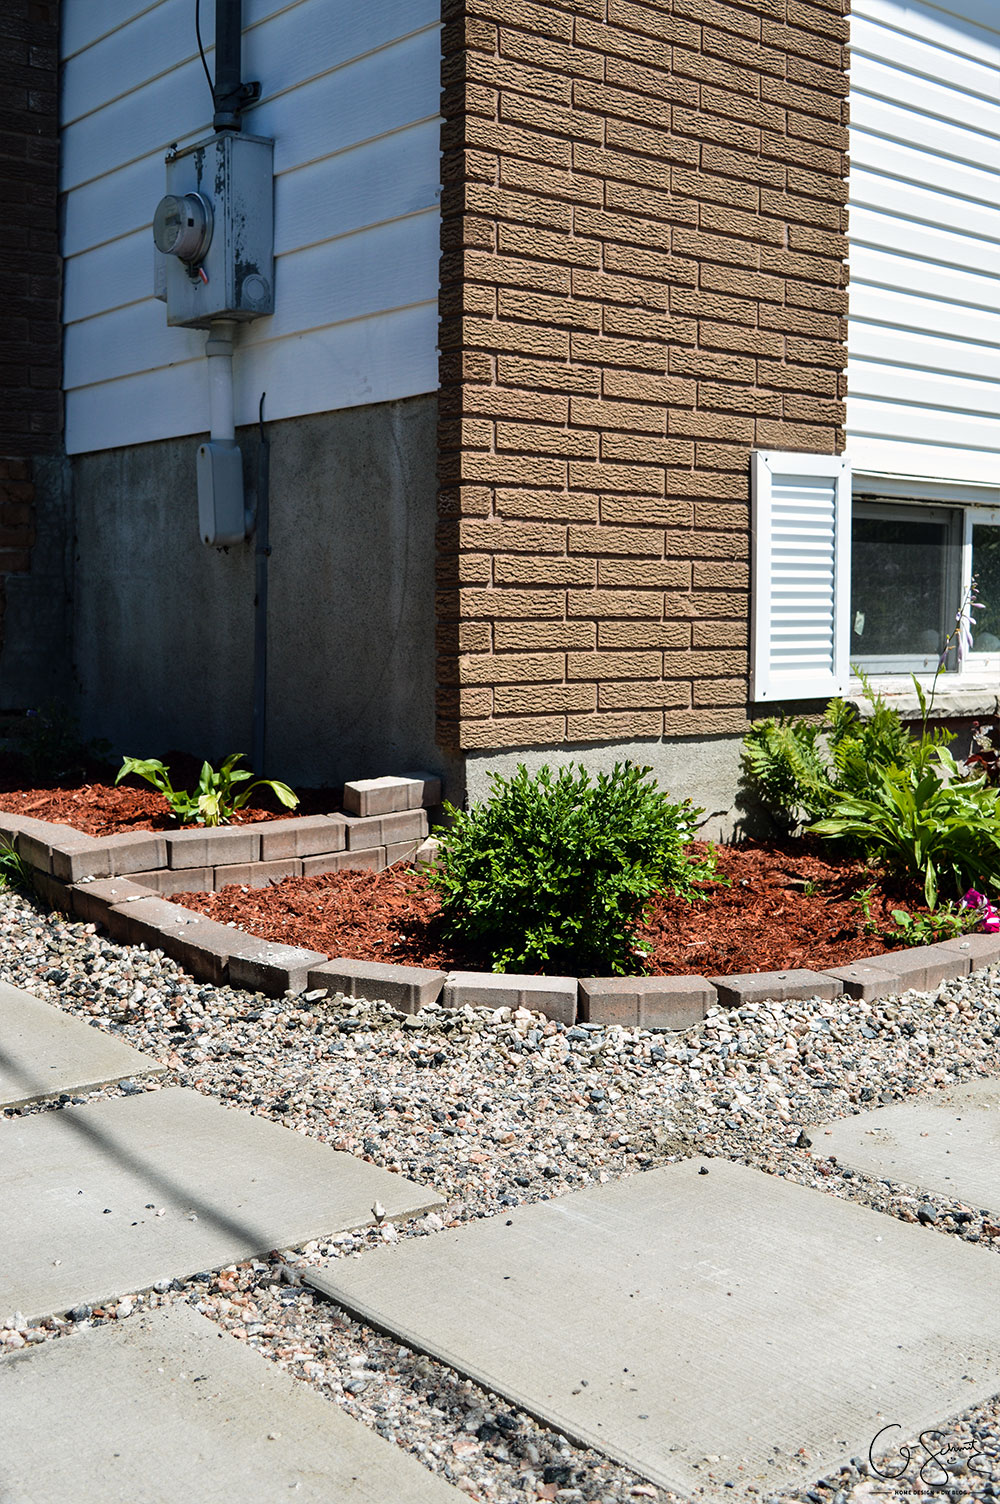 Today I'm going to show the (almost) completed sideyard landscaping, and I'm really happy that we can scratch this project off our outdoor to-do list!